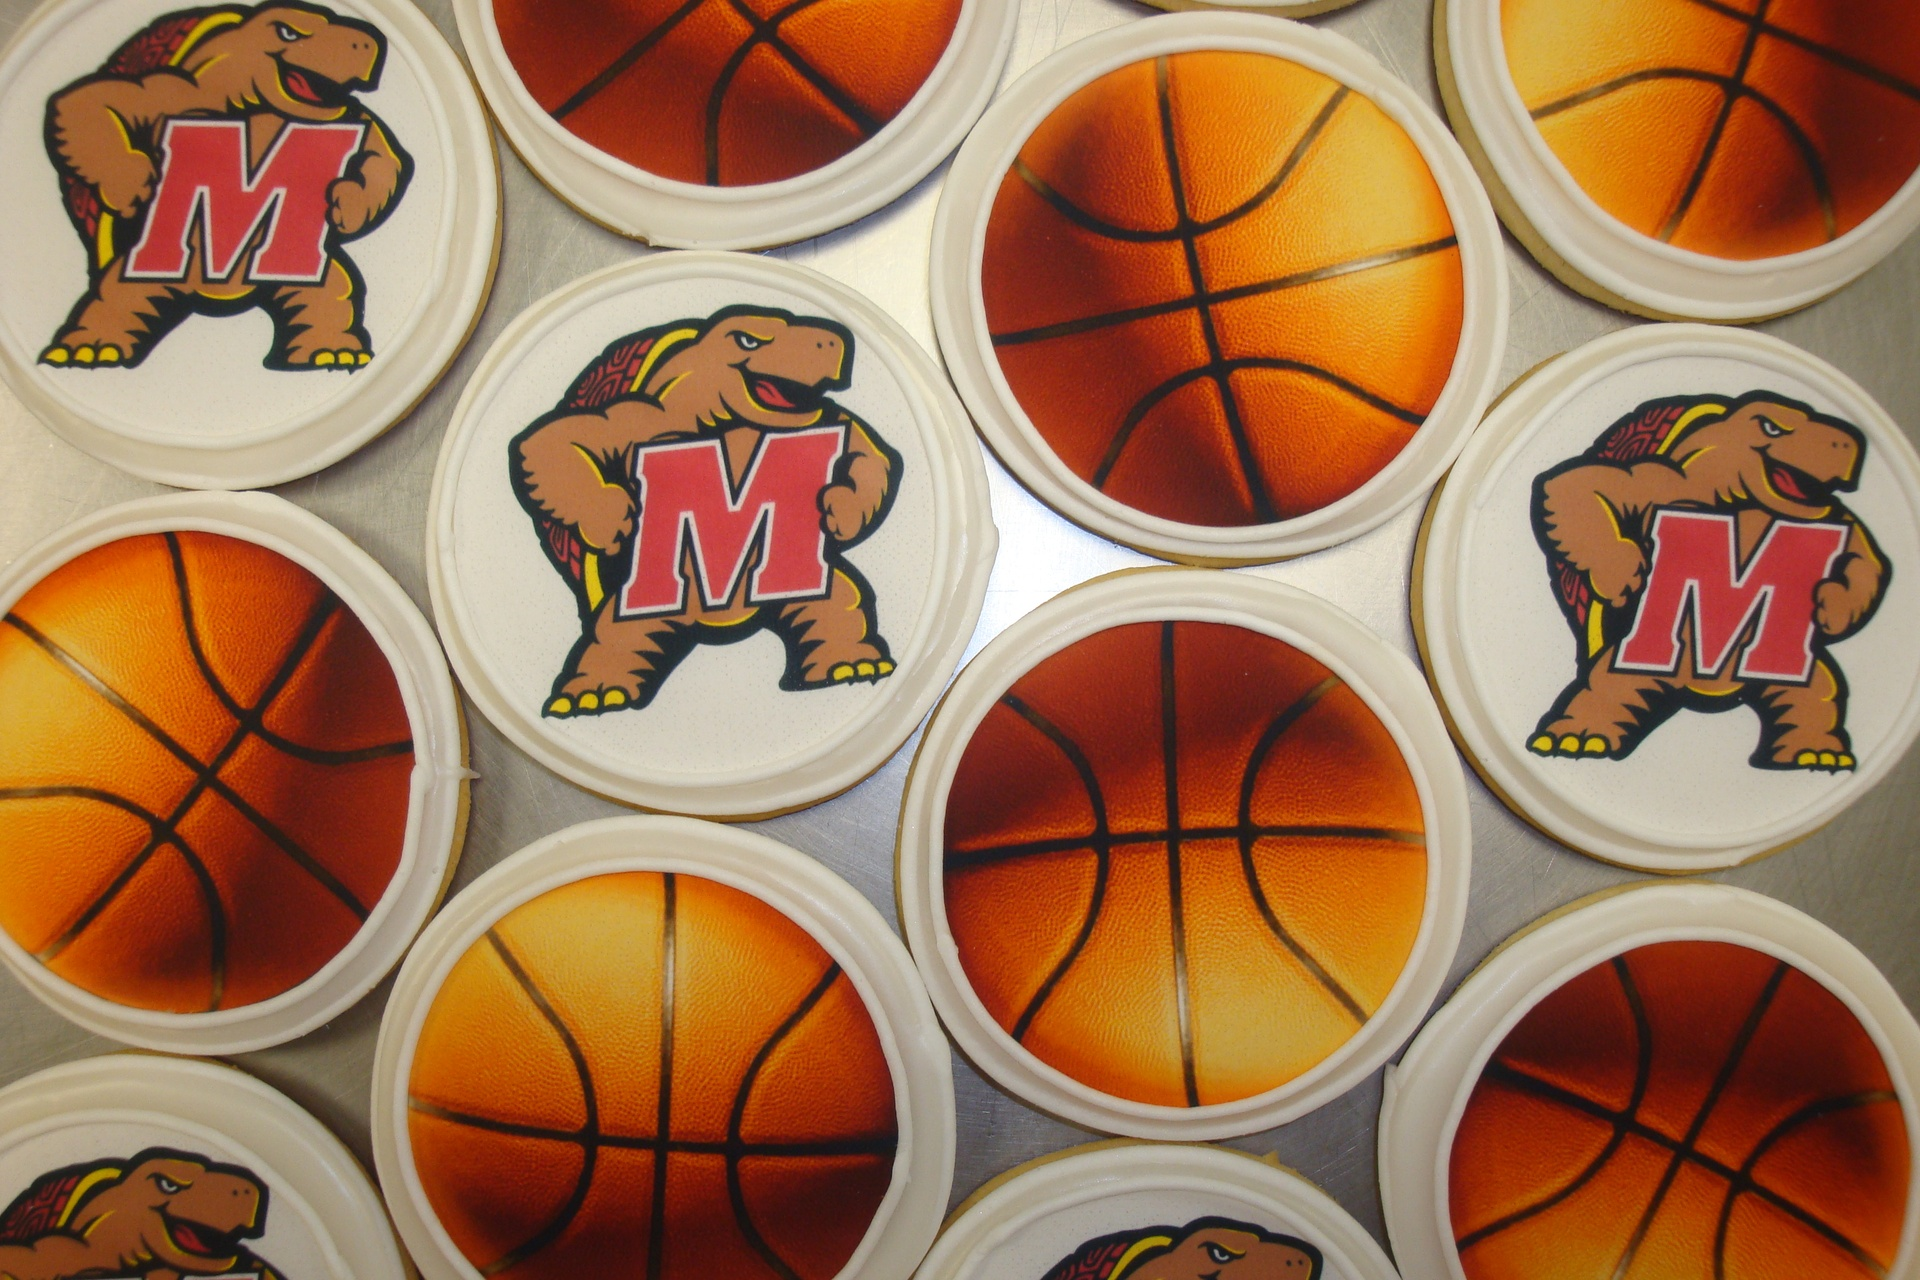 3 inch decal cookies $3 each